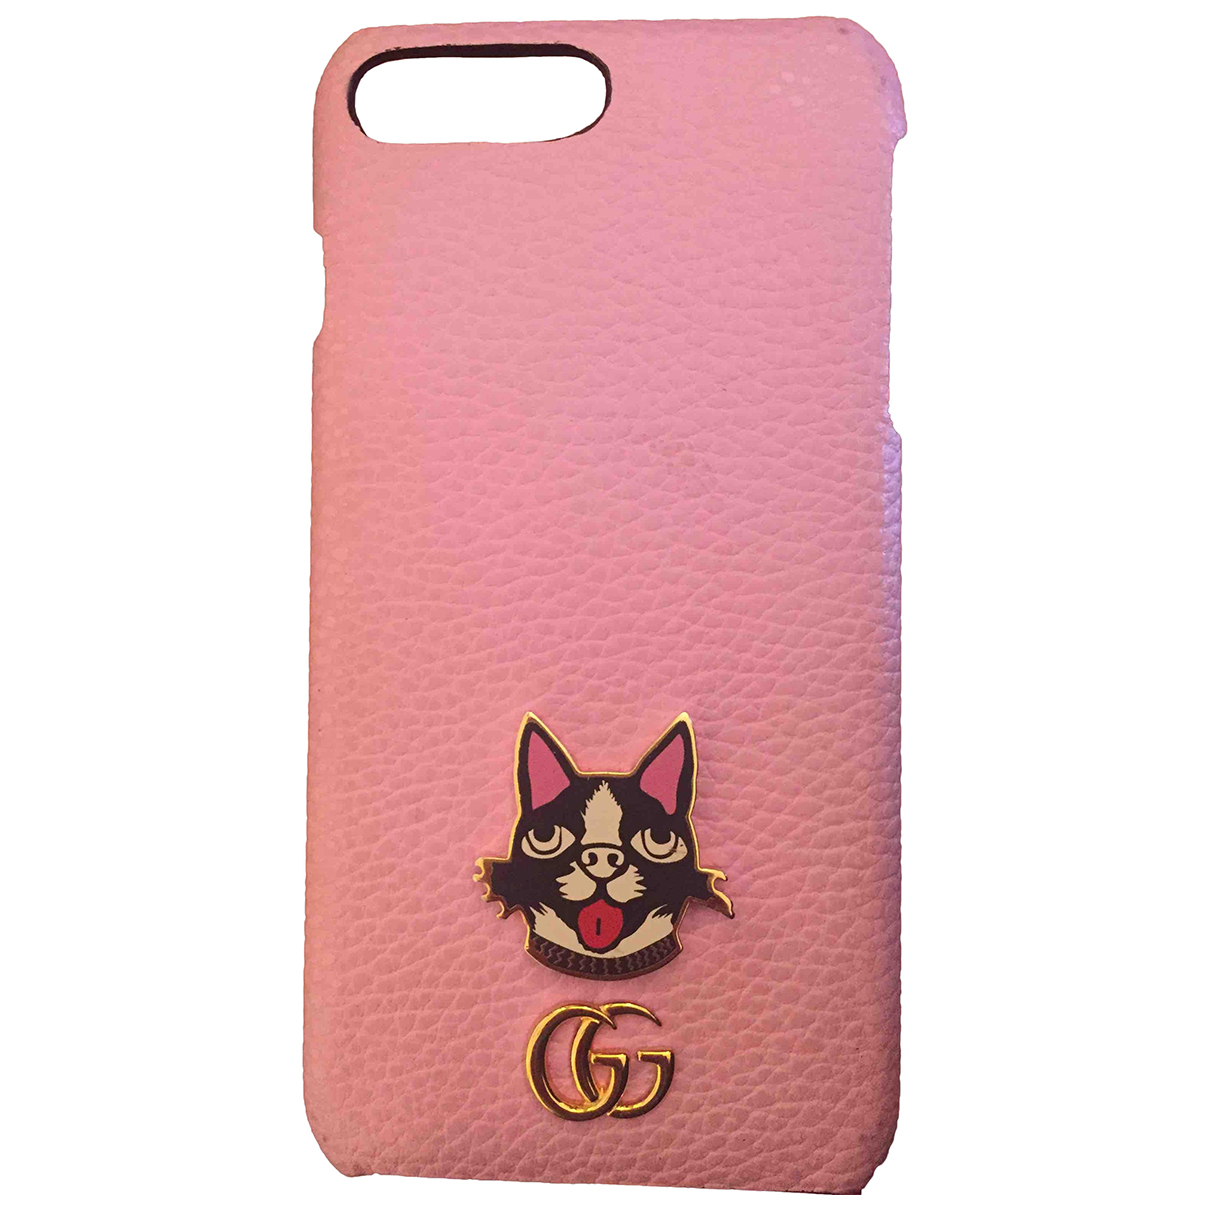 Funda iphone de Cuero Gucci